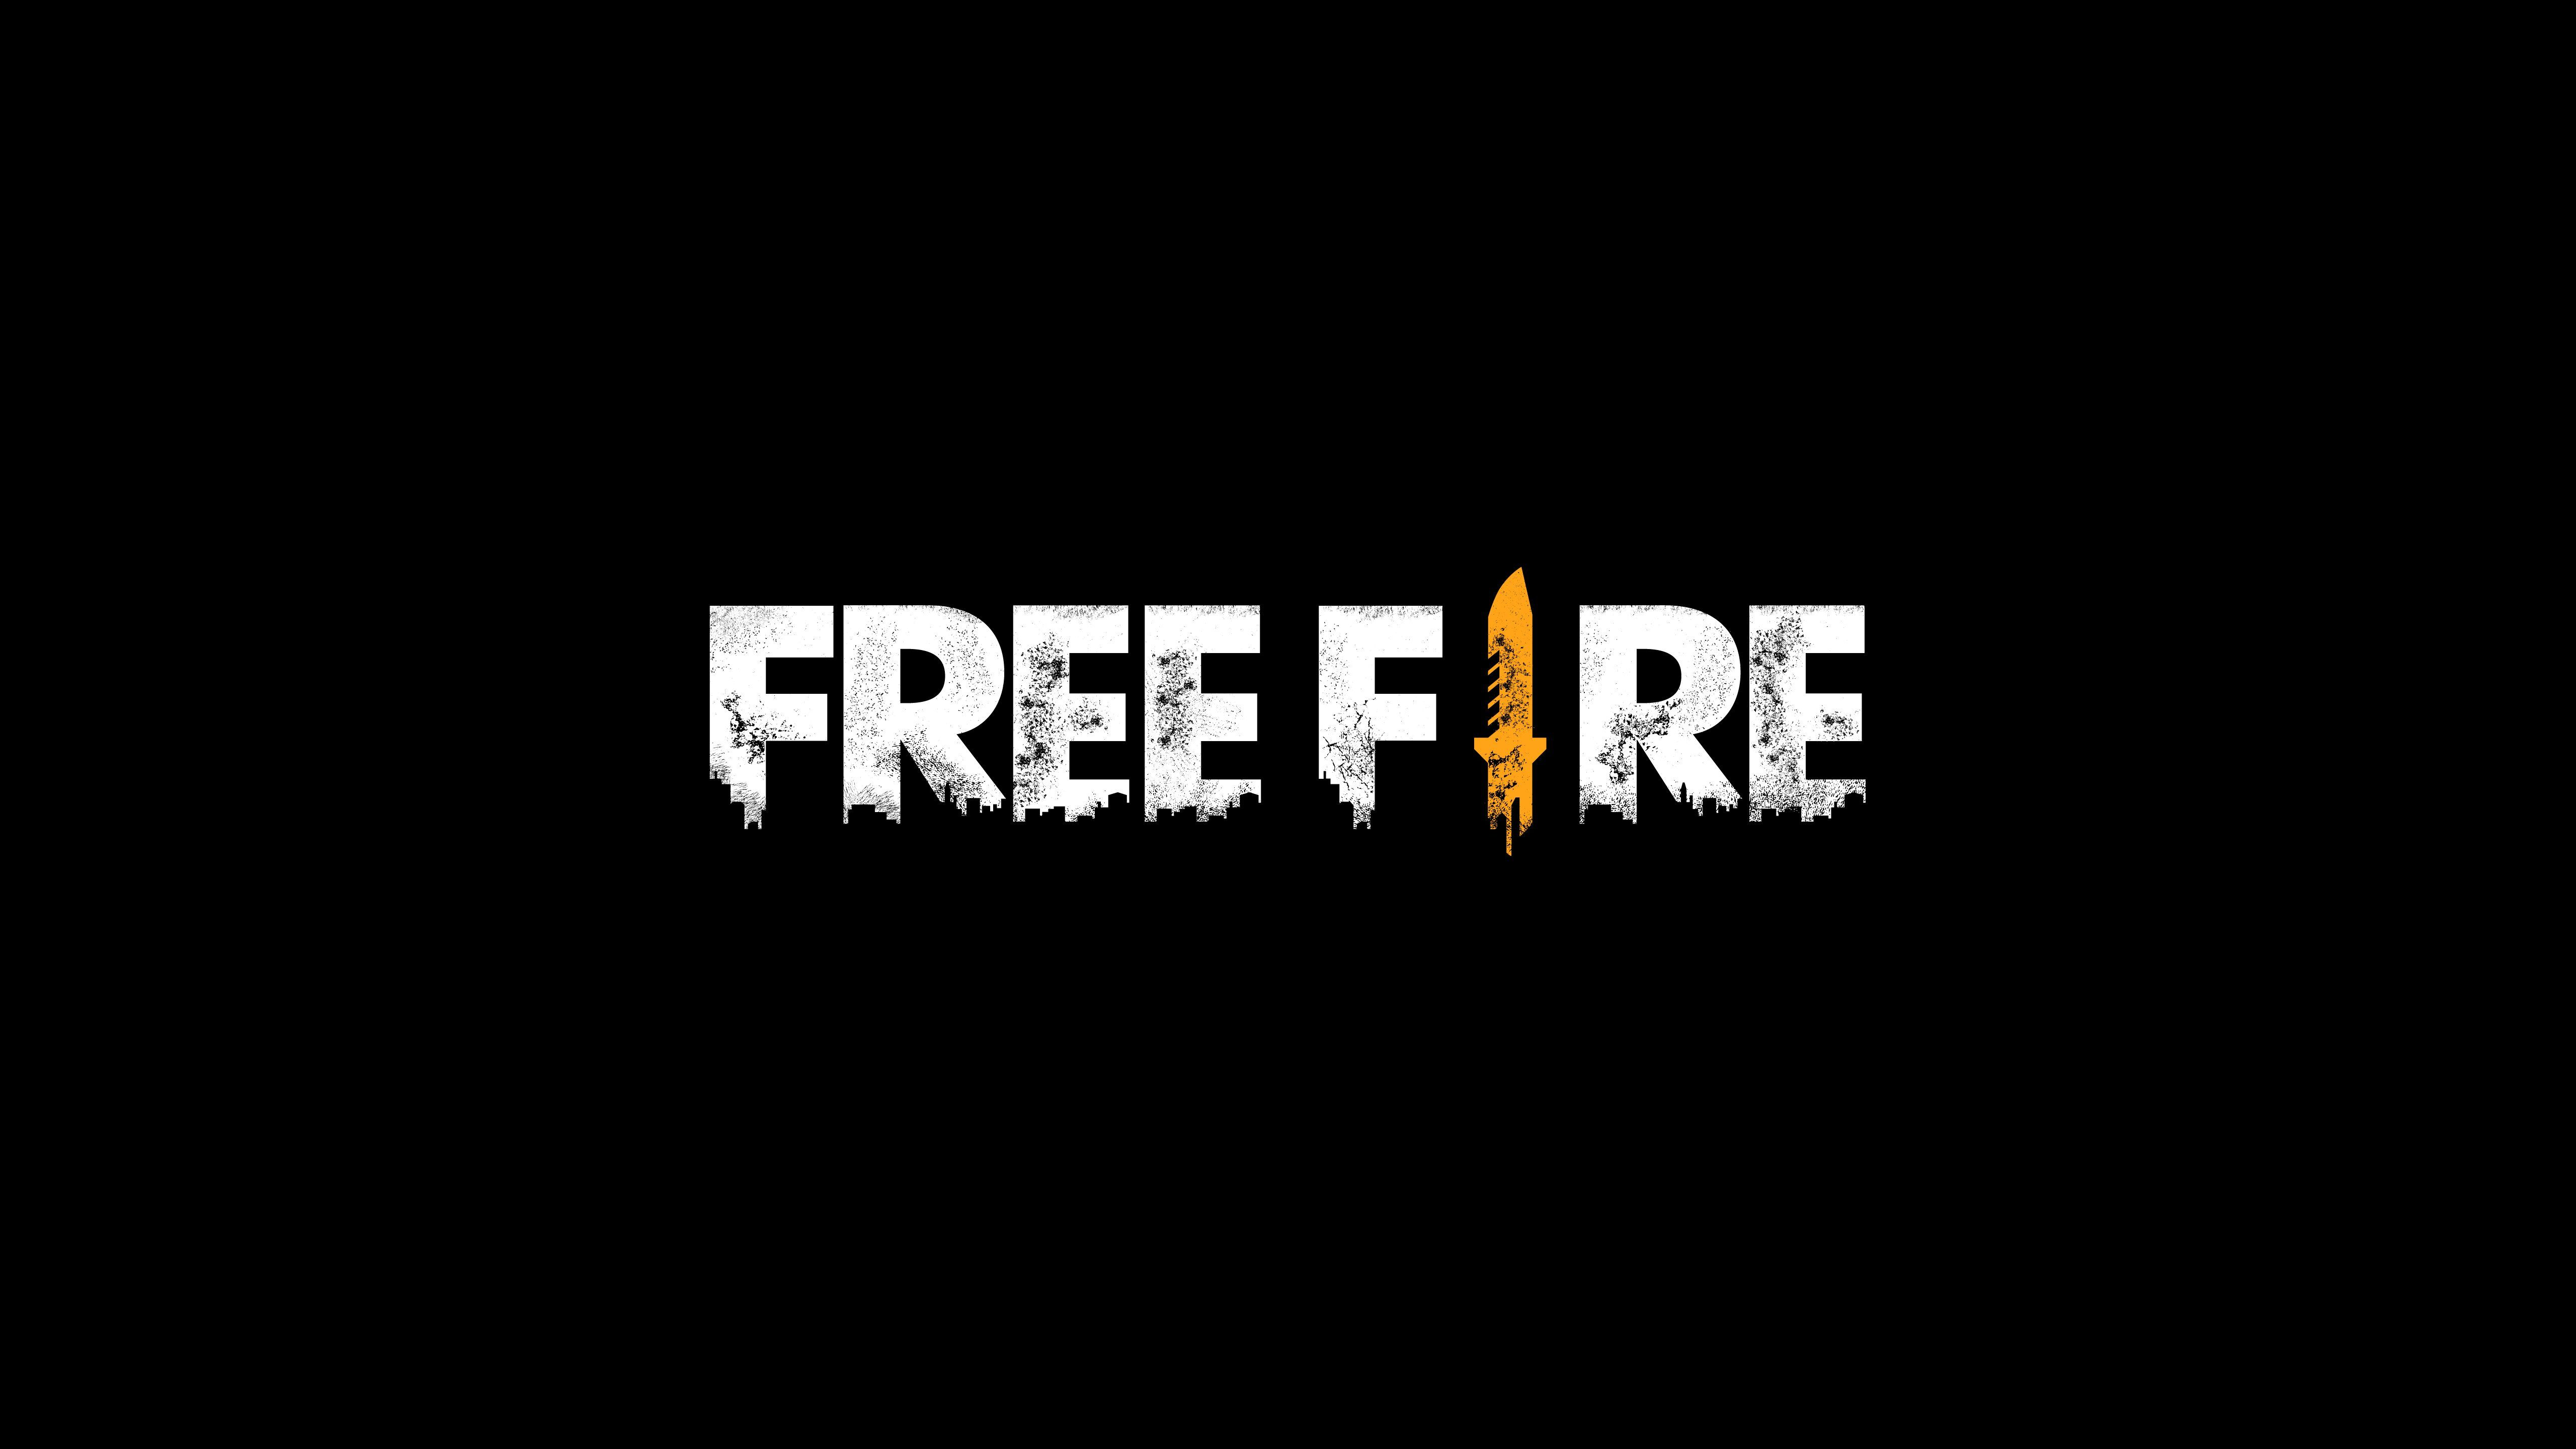 Game banner para youtube 1024x576 download hd. Banner Youtube Free Fire 2048x1152 Free Fire Banner Wallpapers Wallpaper Cave The Great Collection Of 2048x1152 Wallpaper For Youtube For Desktop Laptop And Mobiles